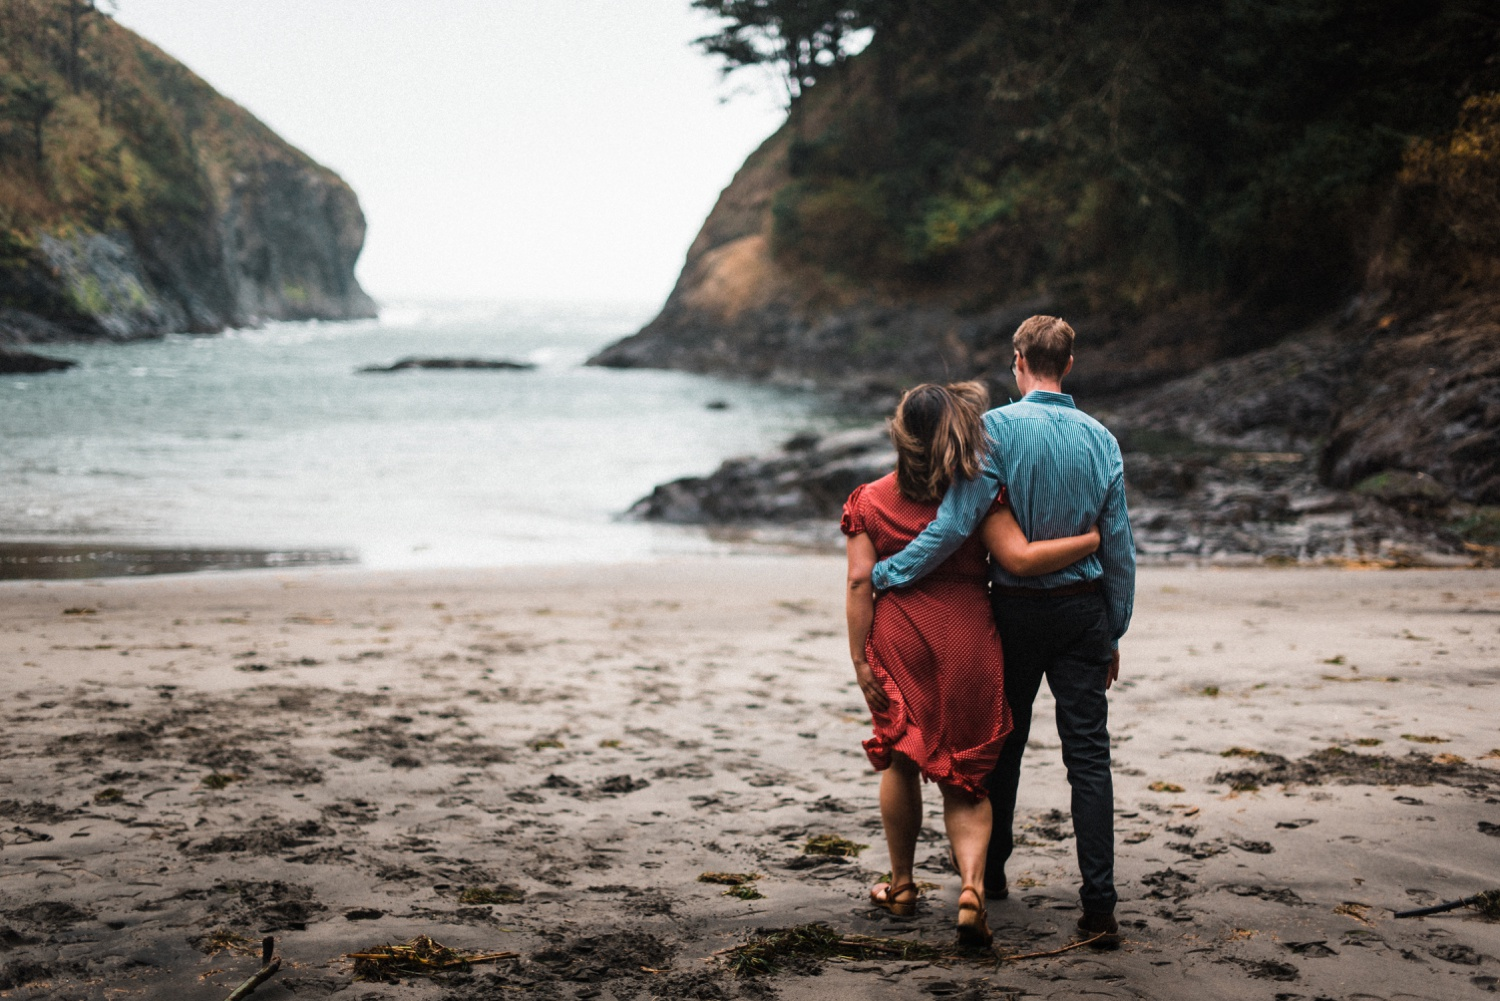 Cape_Disappointment_Engagment_Kailey_Alex_The_Foxes_Photography_038.jpg